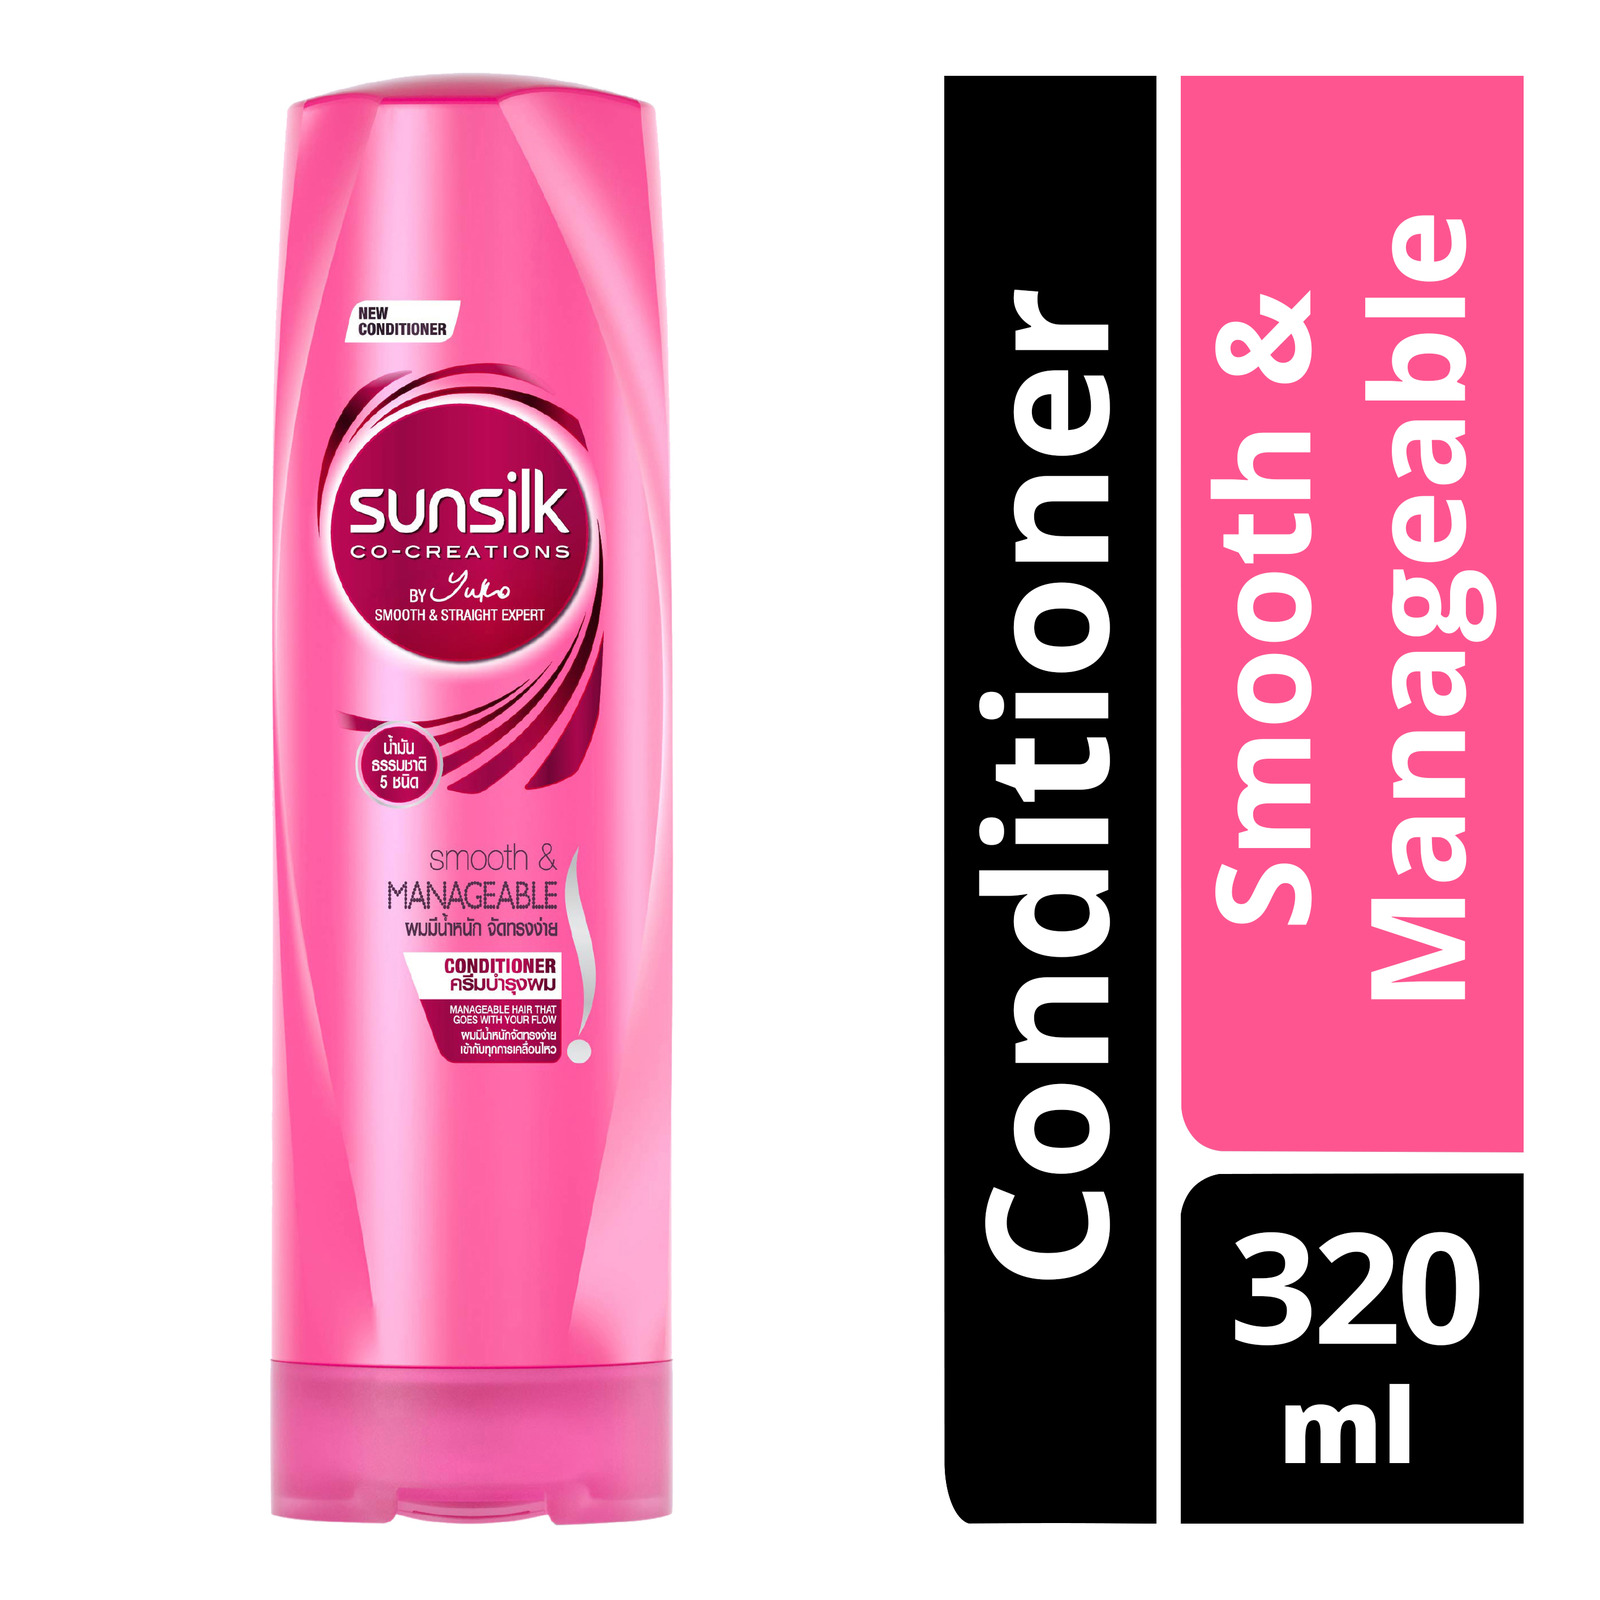 Sunsilk Hair Conditioner - Smooth & Manageable